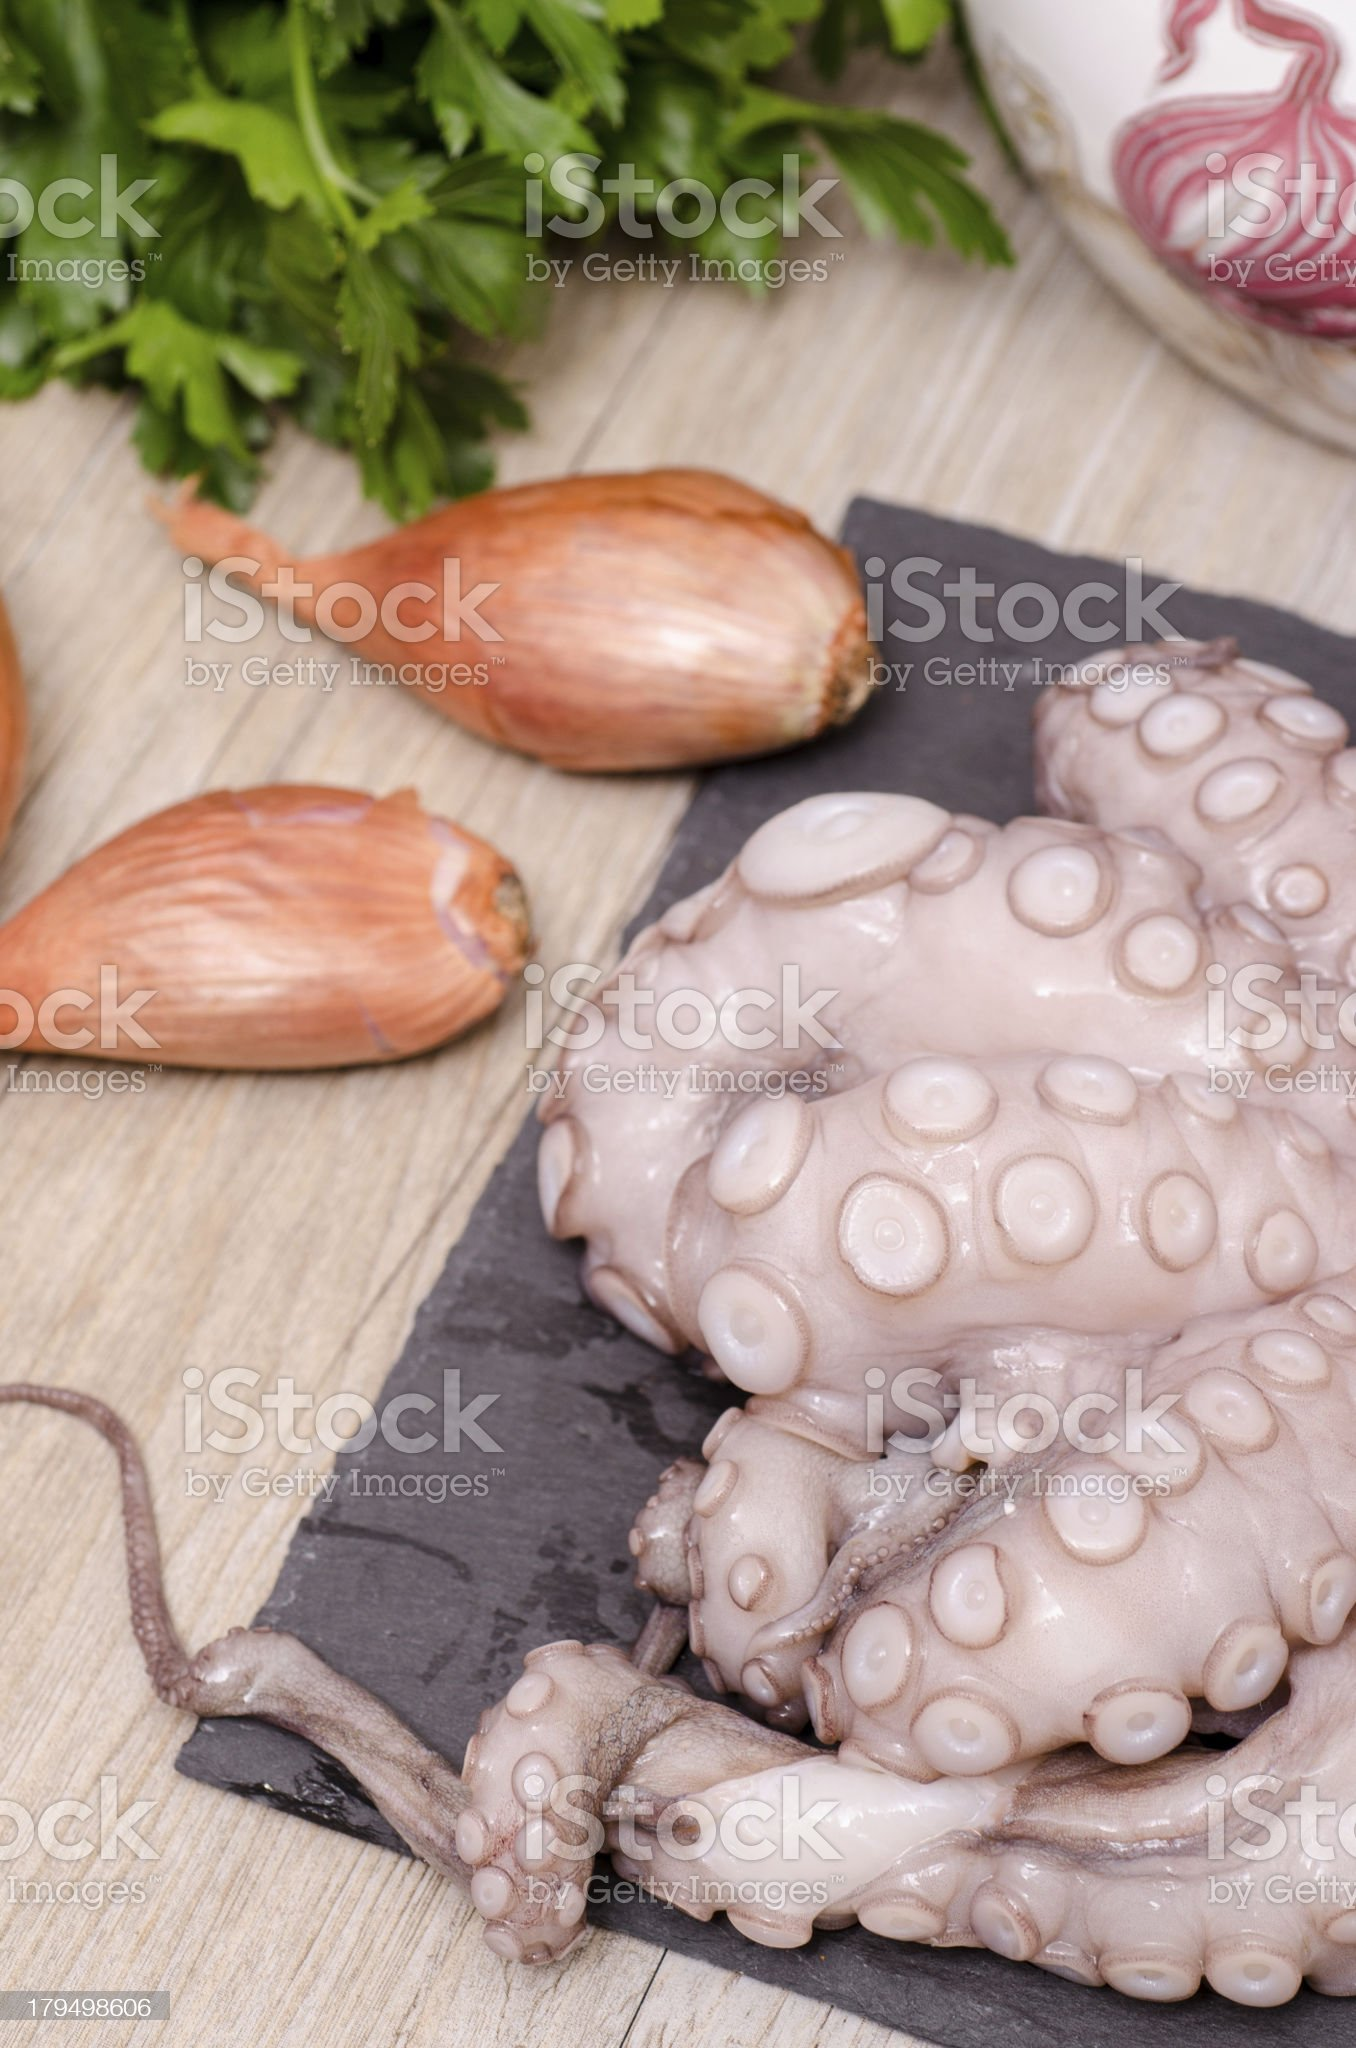 Raw octopus in vertical format royalty-free stock photo